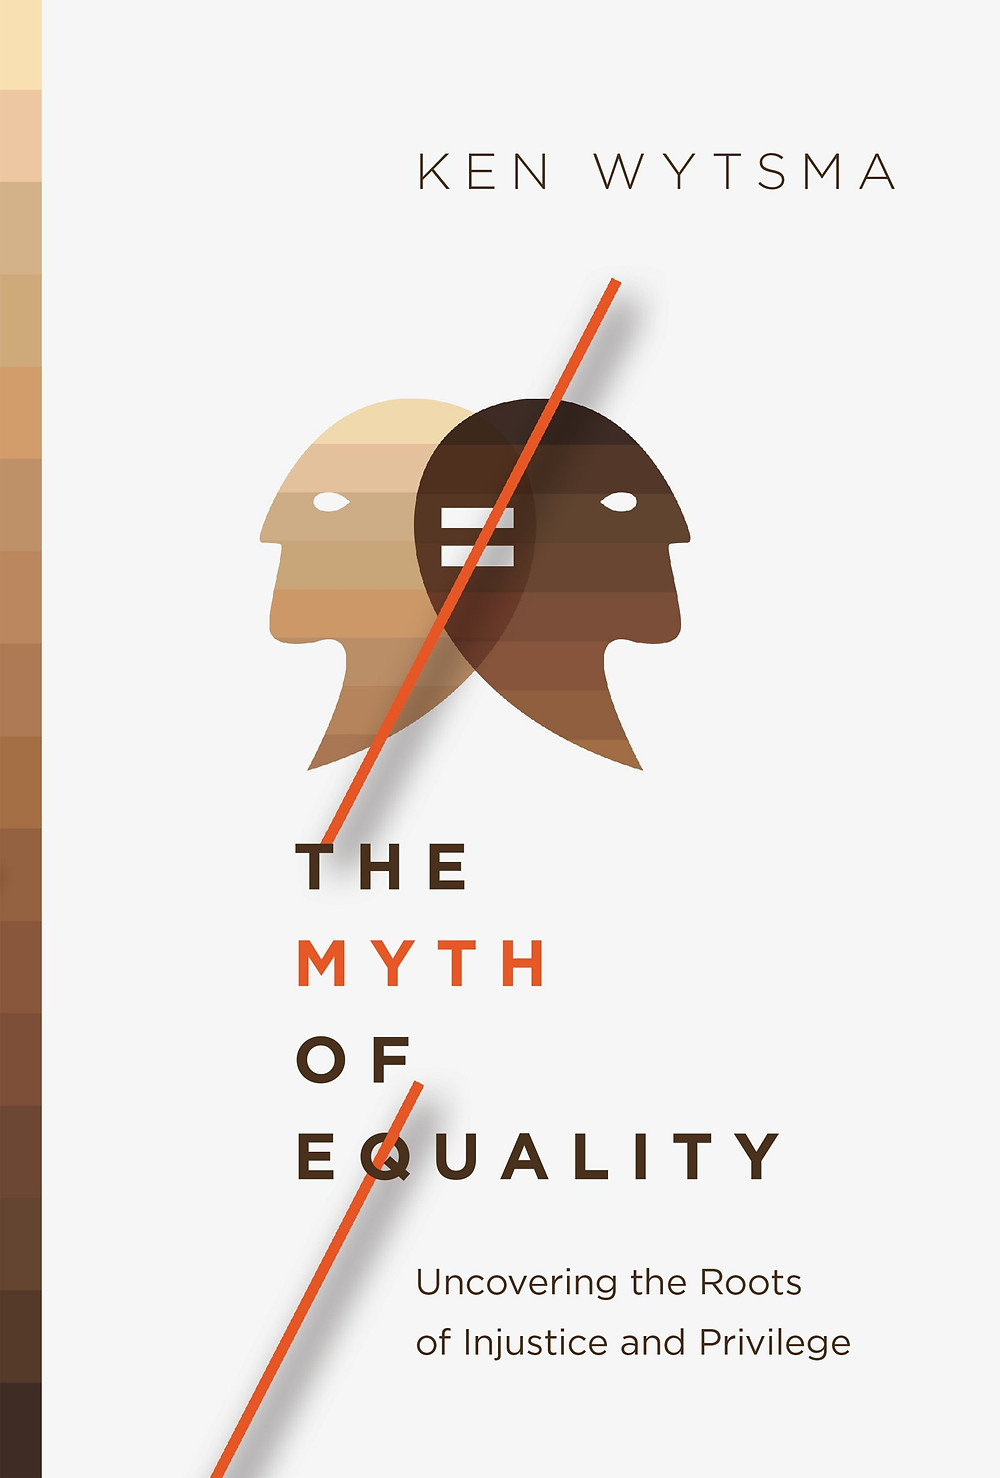 Cover photo of the book The Myth of Equality - two outlines of faces, one white/tan and the other brown/black with a not equal sign in between.